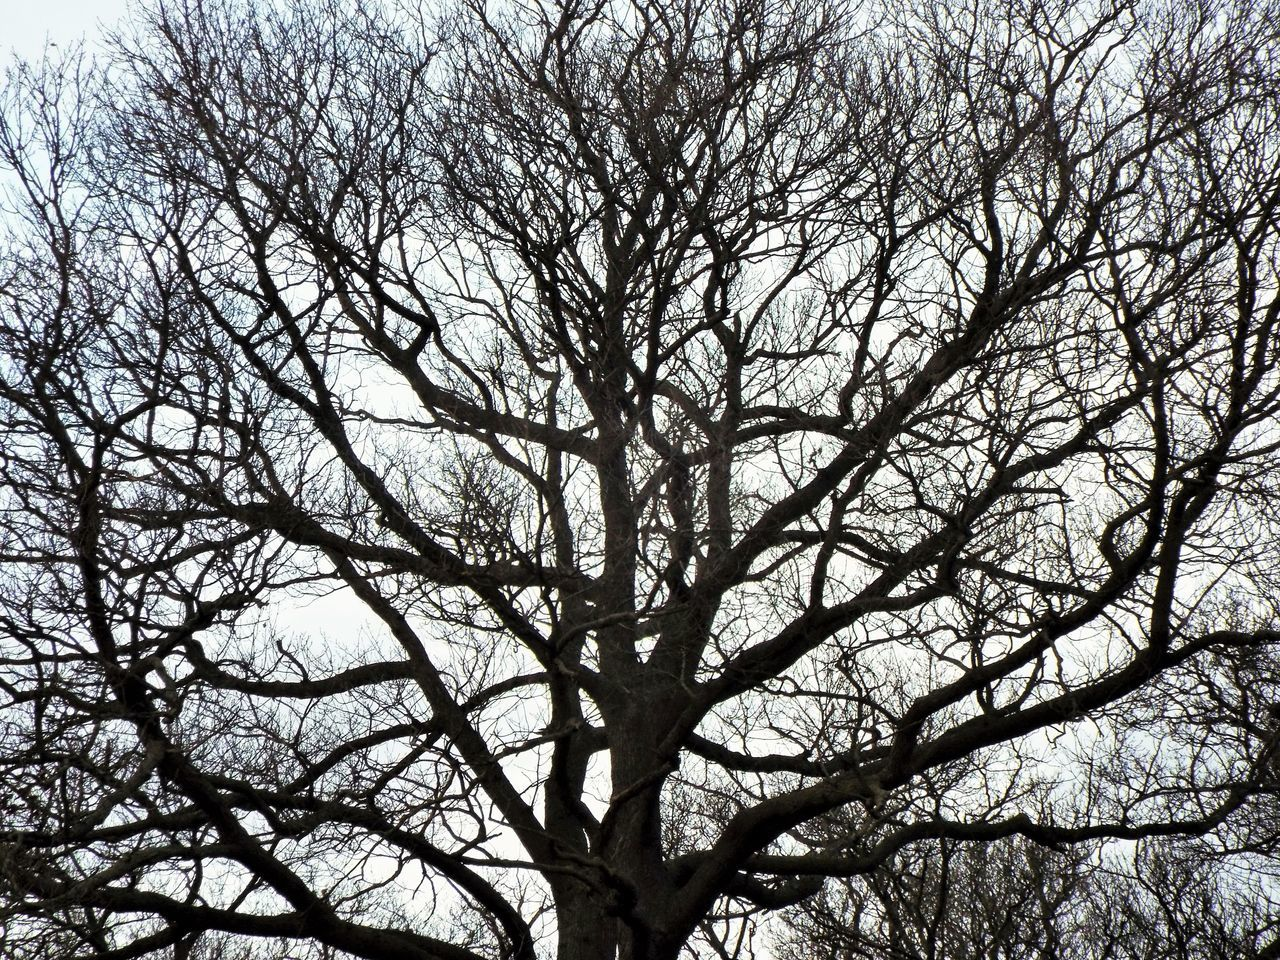 tree, branch, low angle view, nature, bare tree, beauty in nature, outdoors, tranquility, day, no people, backgrounds, forest, scenics, sky